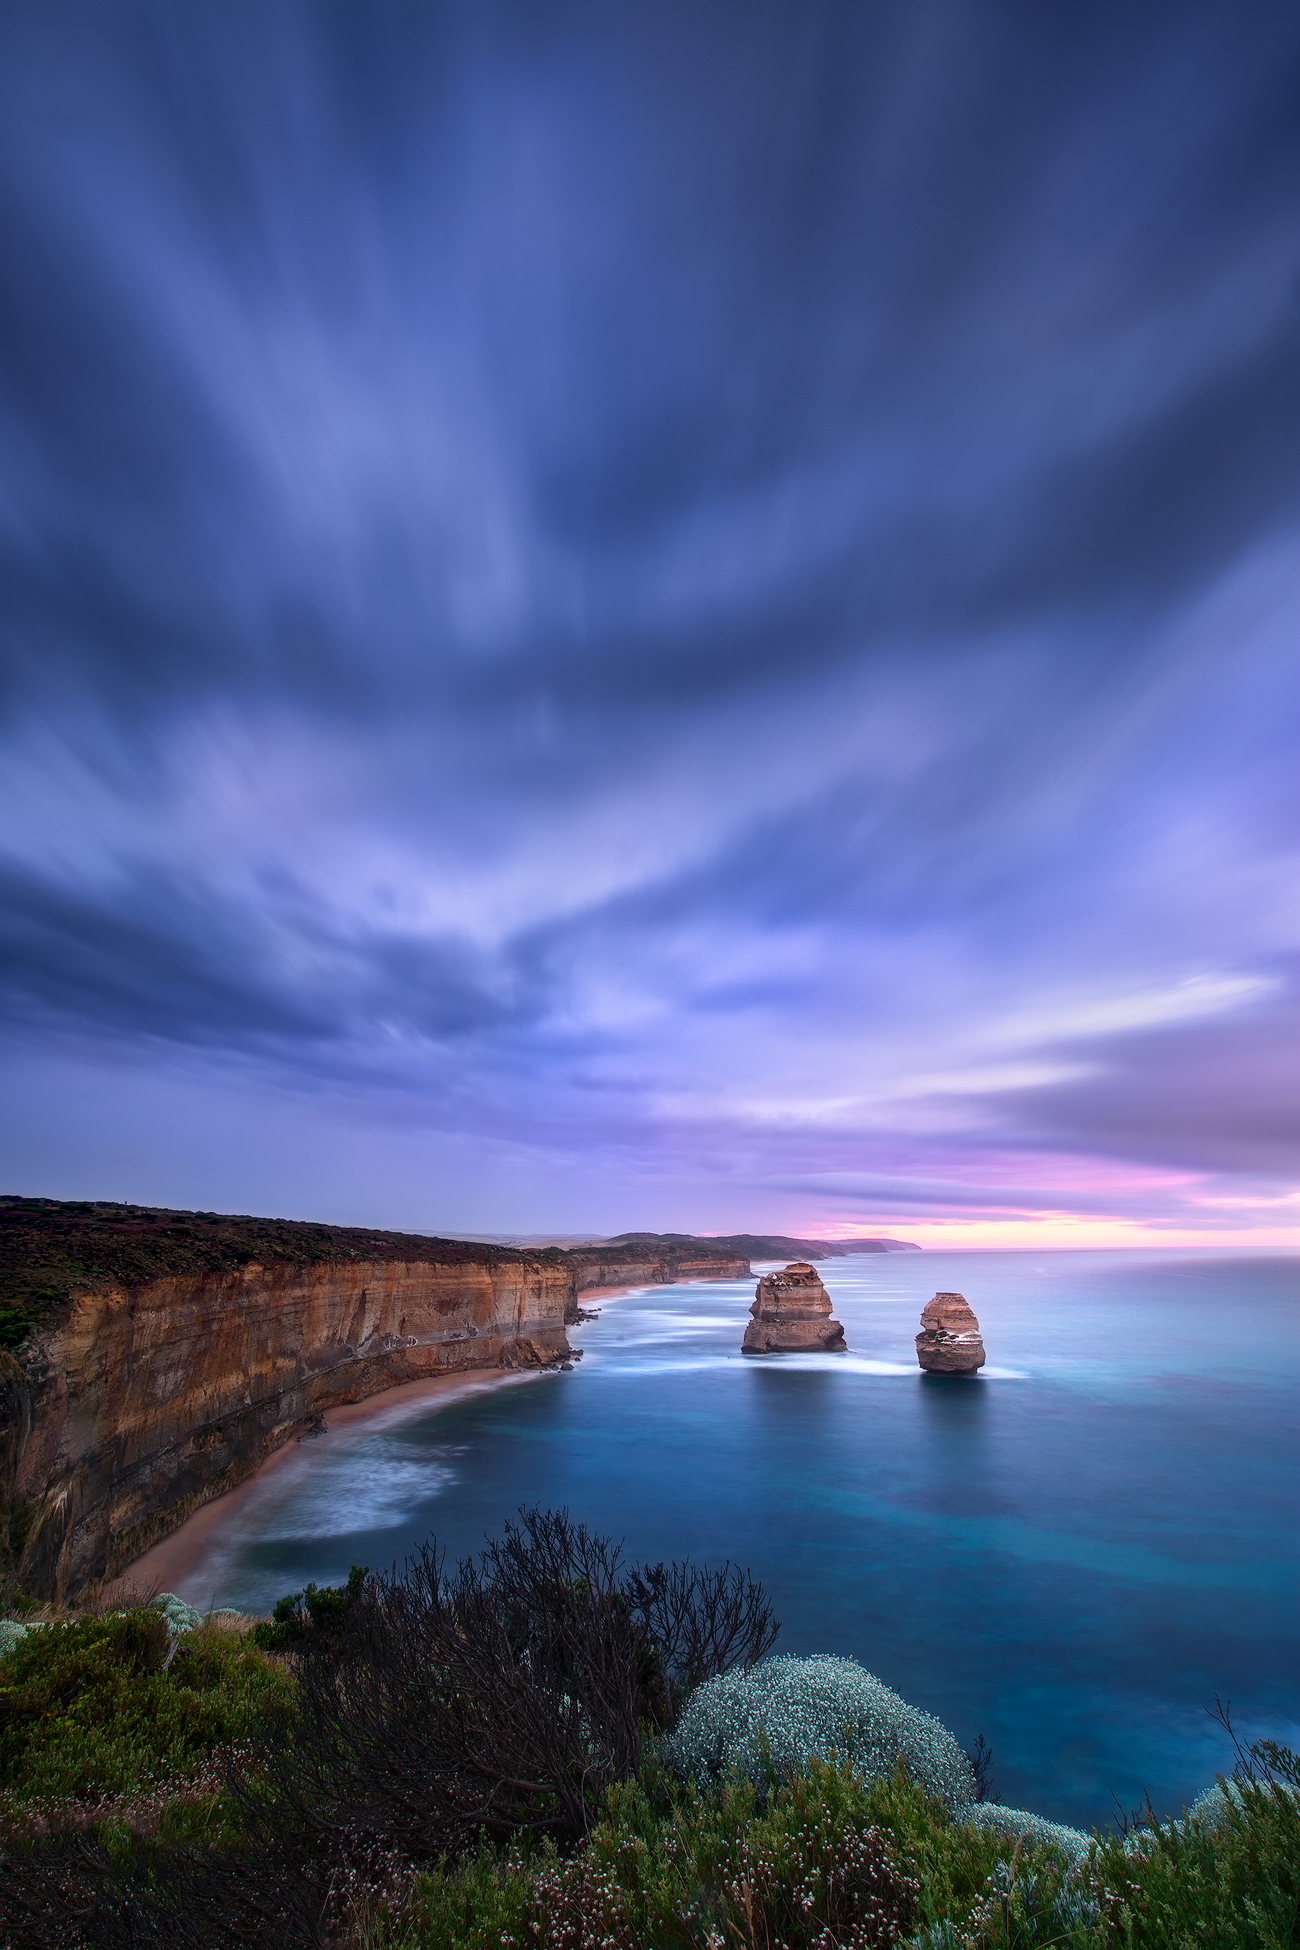 Sunrise at Gibson Steps - Twelve Apostles Lookout, Great Ocean Road, Australia | Holiday with We Are Raw Photography Tours